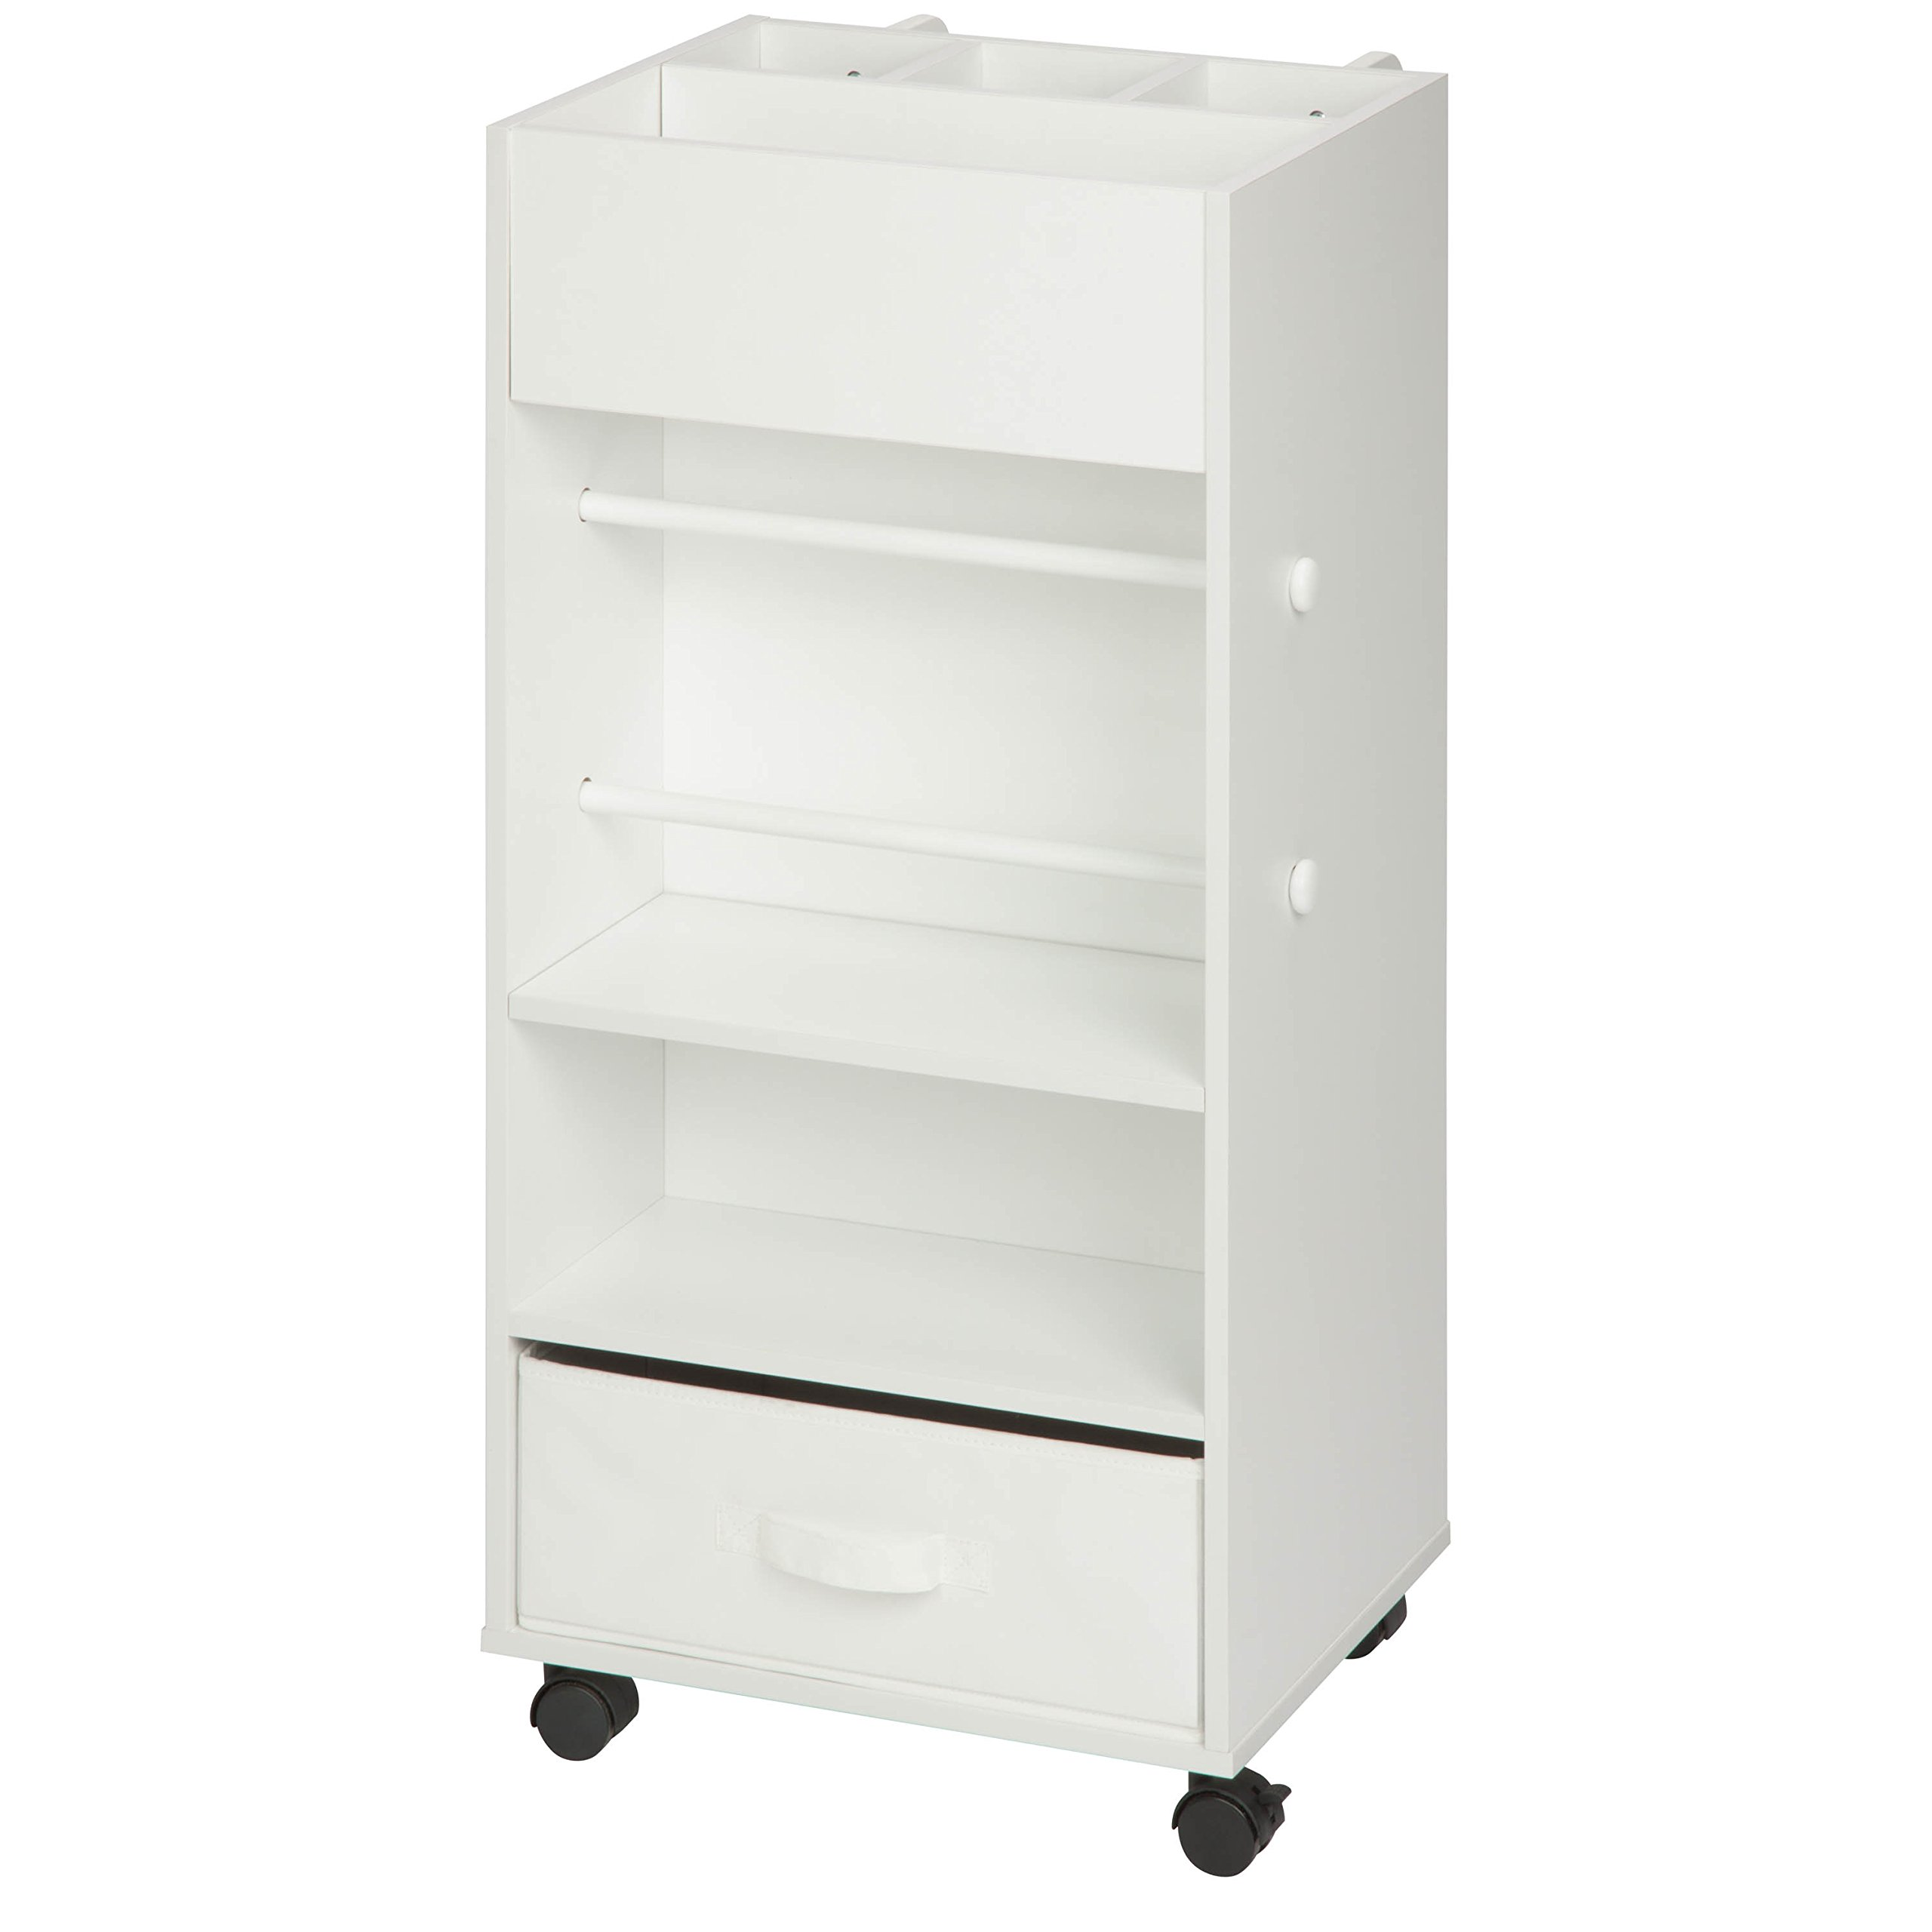 Honey-Can-Do CRT-06342 Rolling Craft Storage Cart with Fabric Drawer, White by Honey-Can-Do